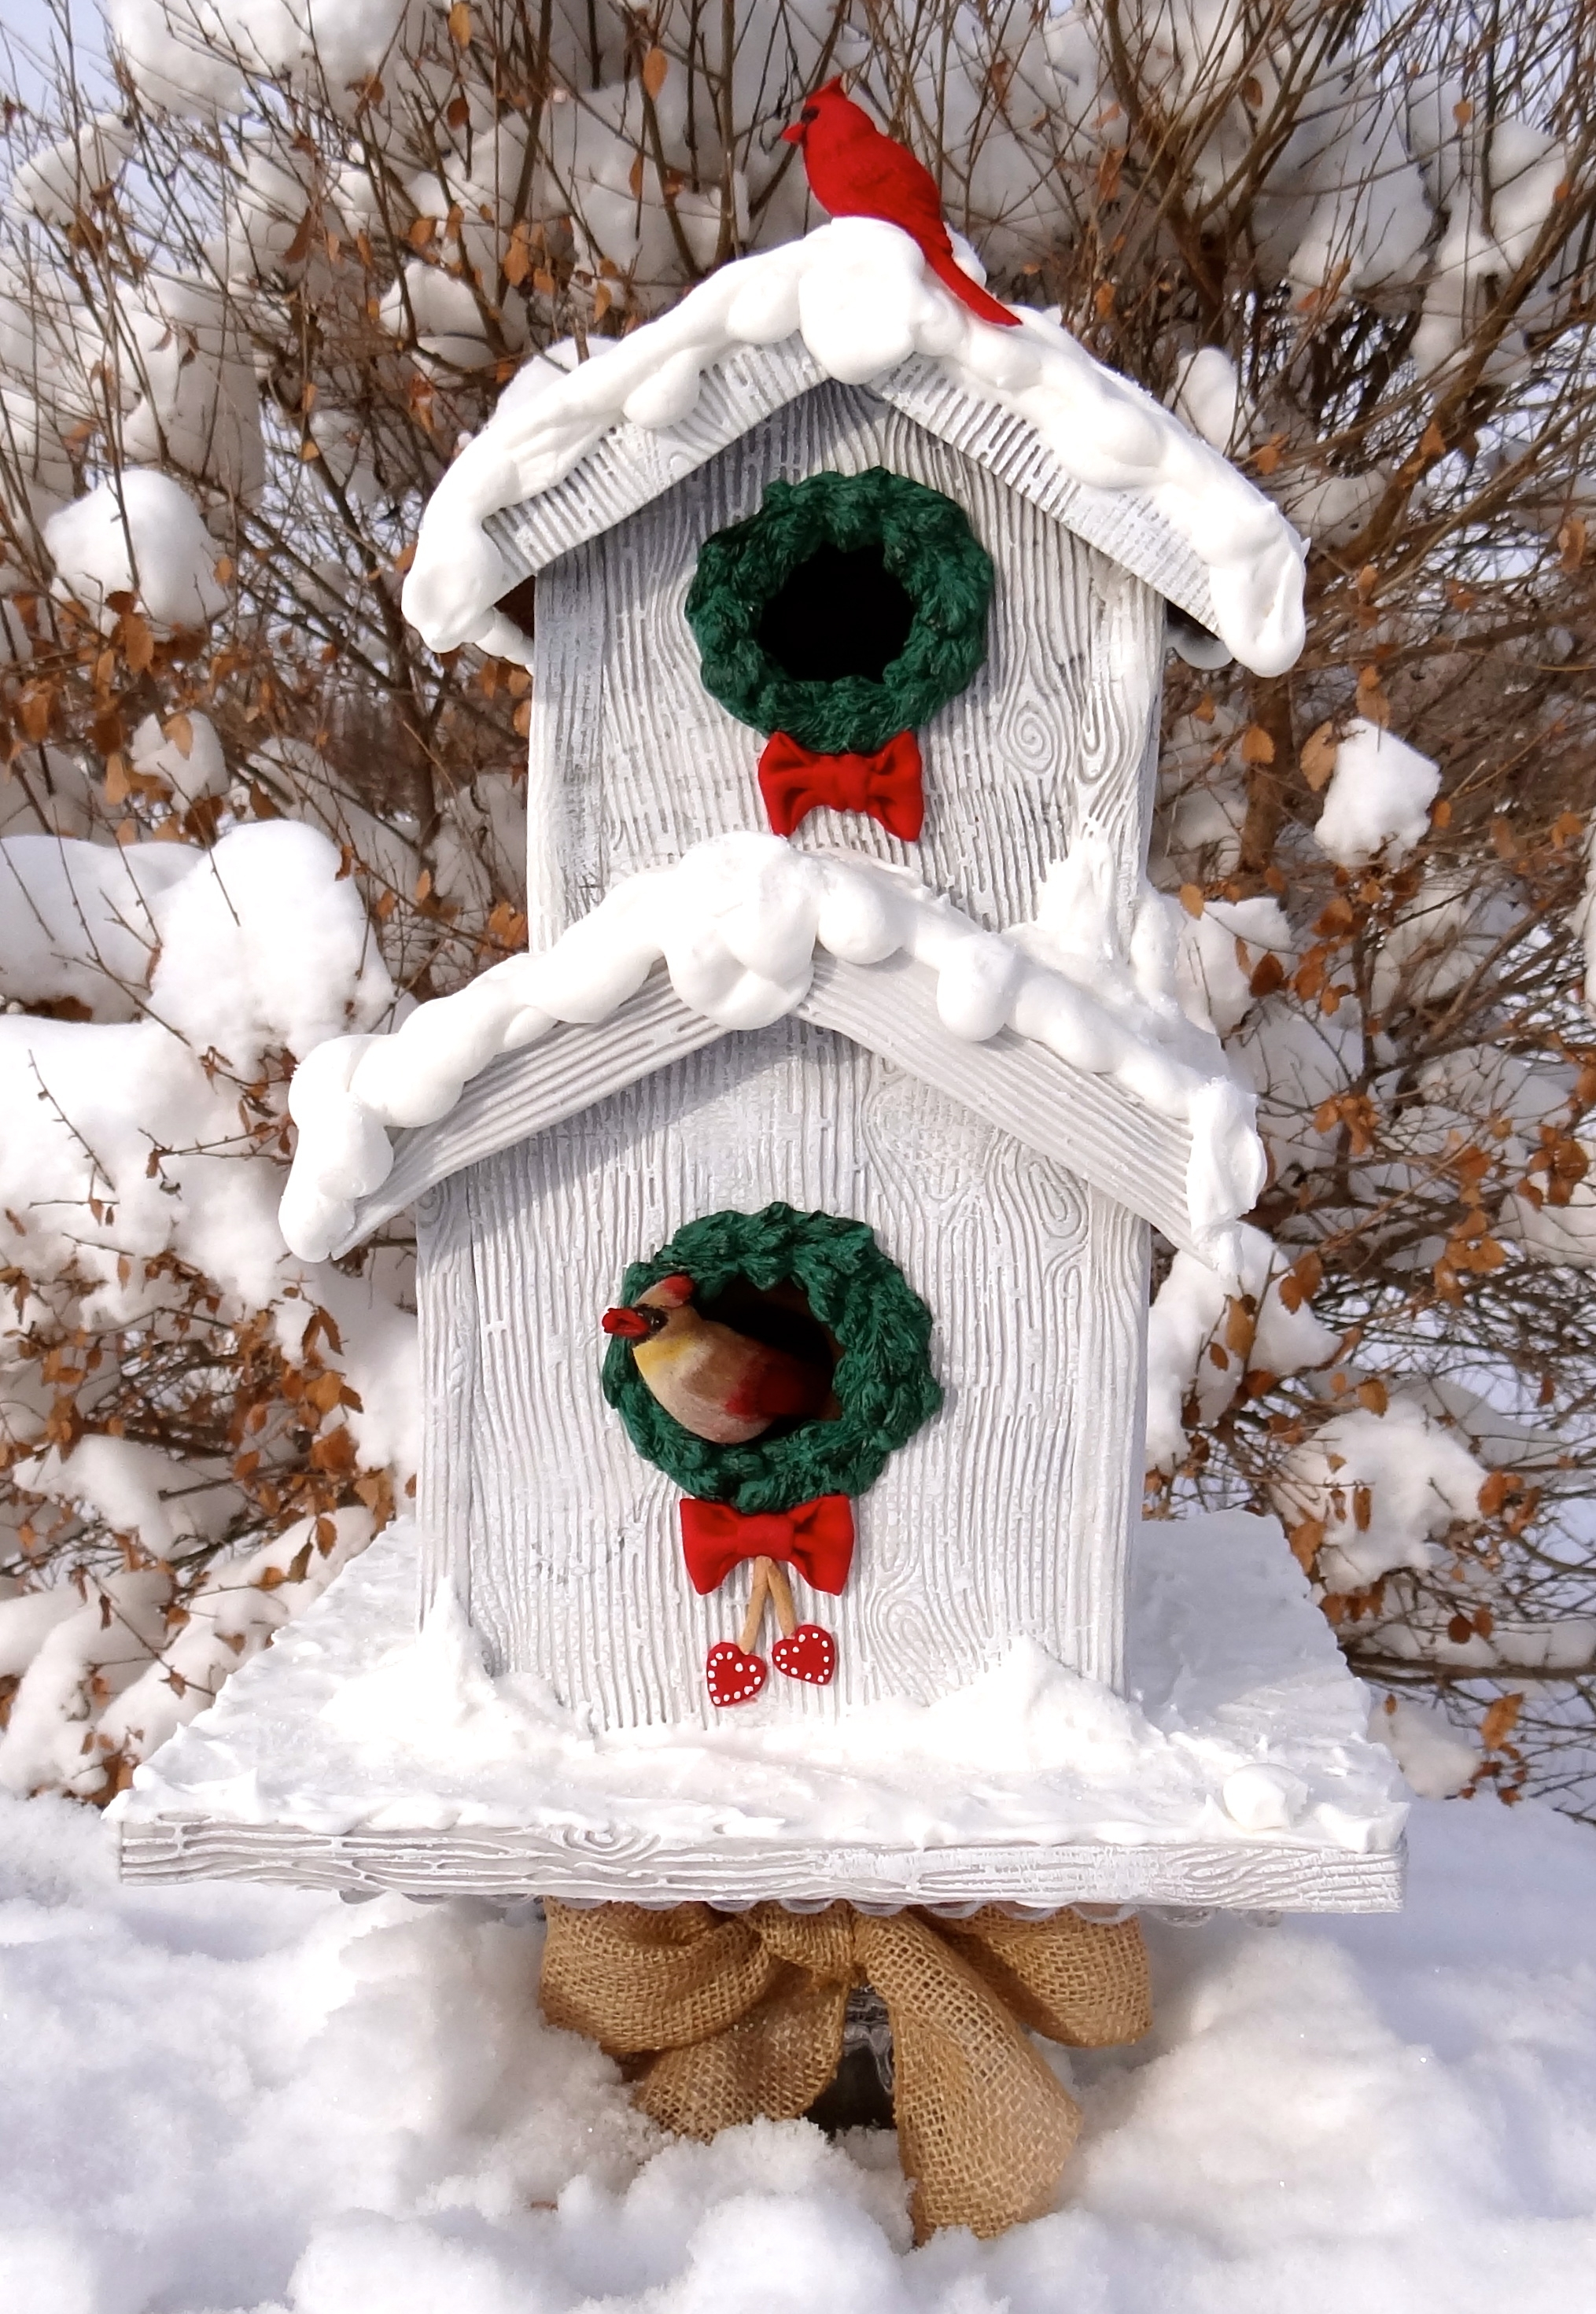 A Weathered Gingerbread Birdhouse